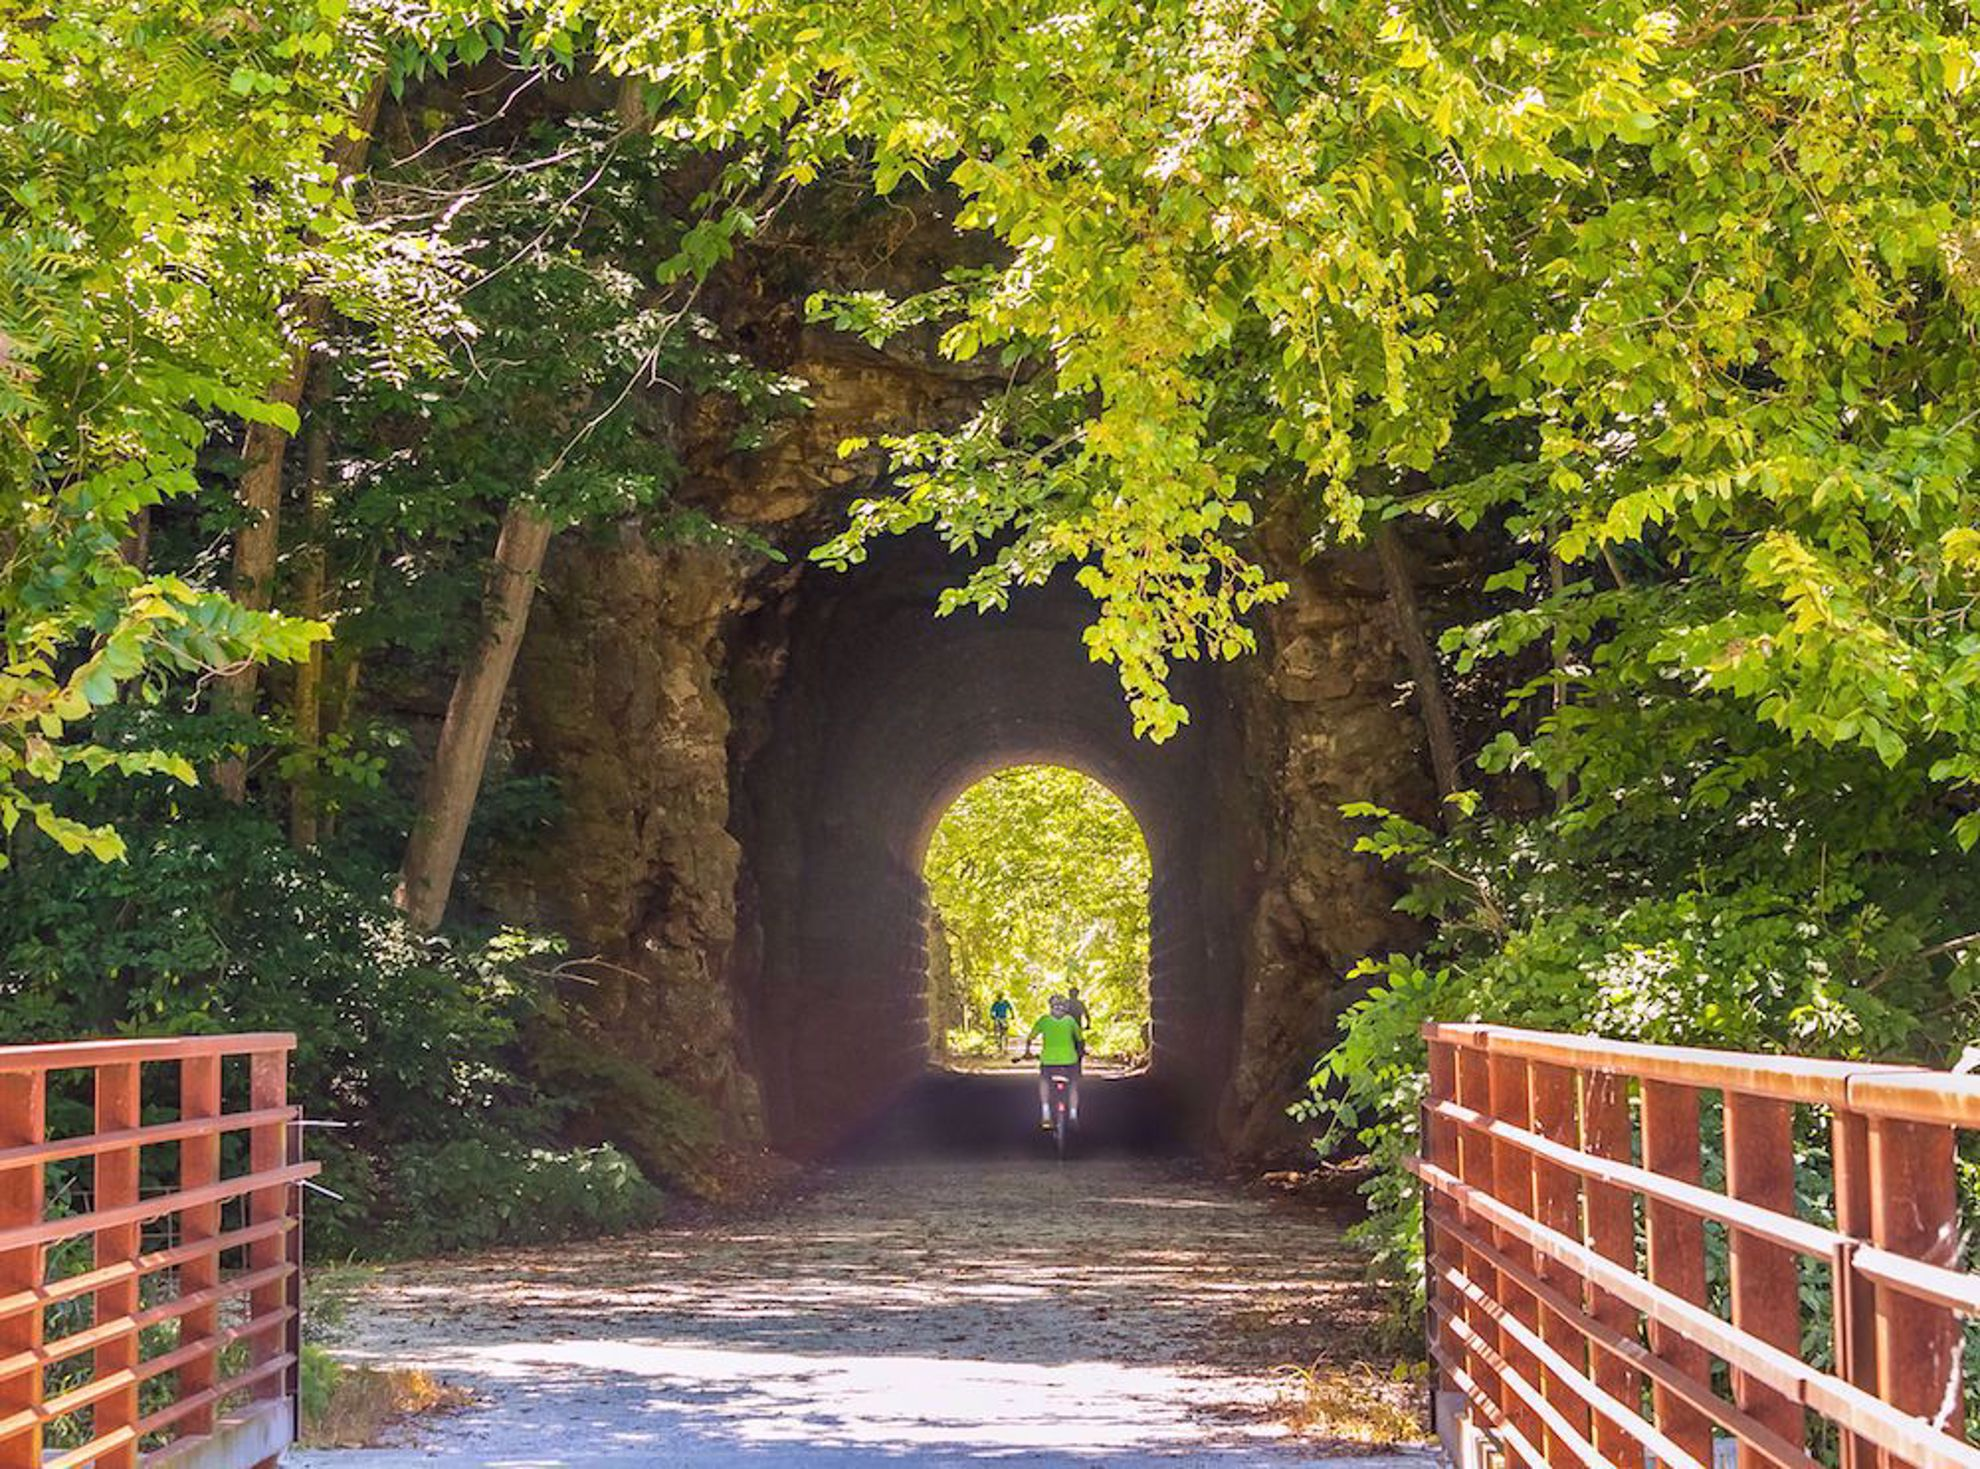 Tunnel and biker on Katy Trail